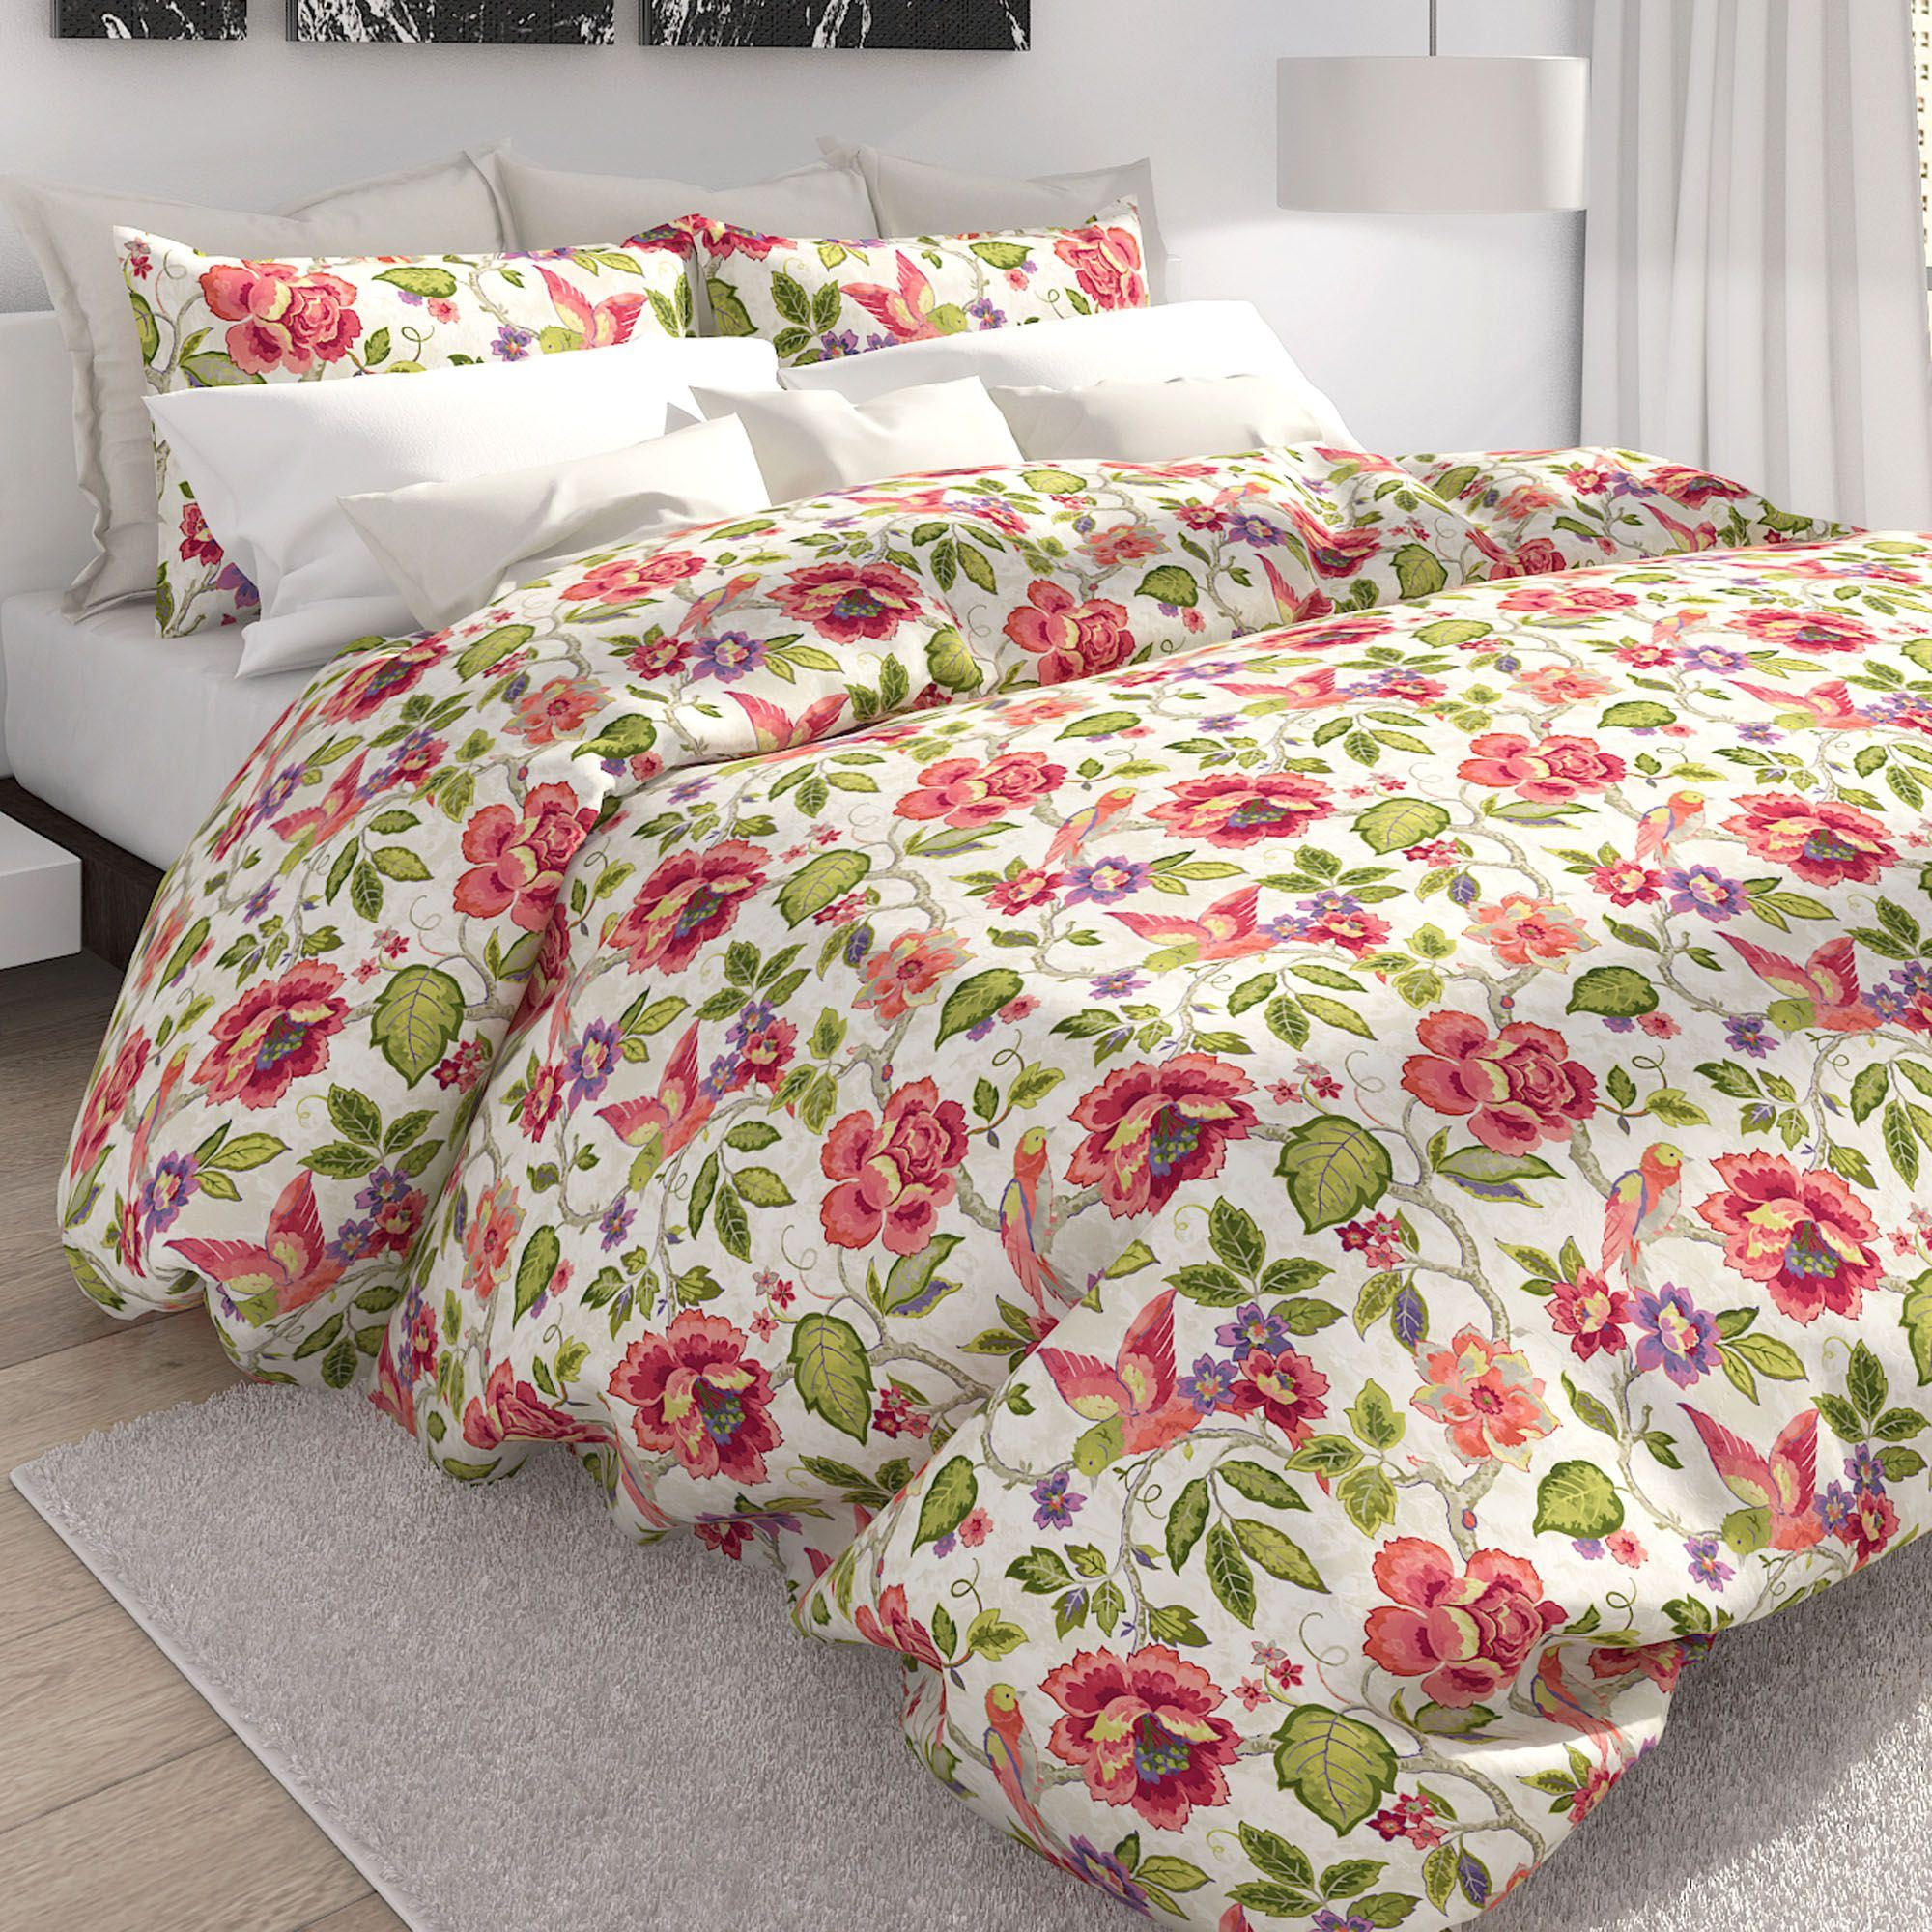 duvet by cover melon expand click to floral colorfly jacobean p set bella